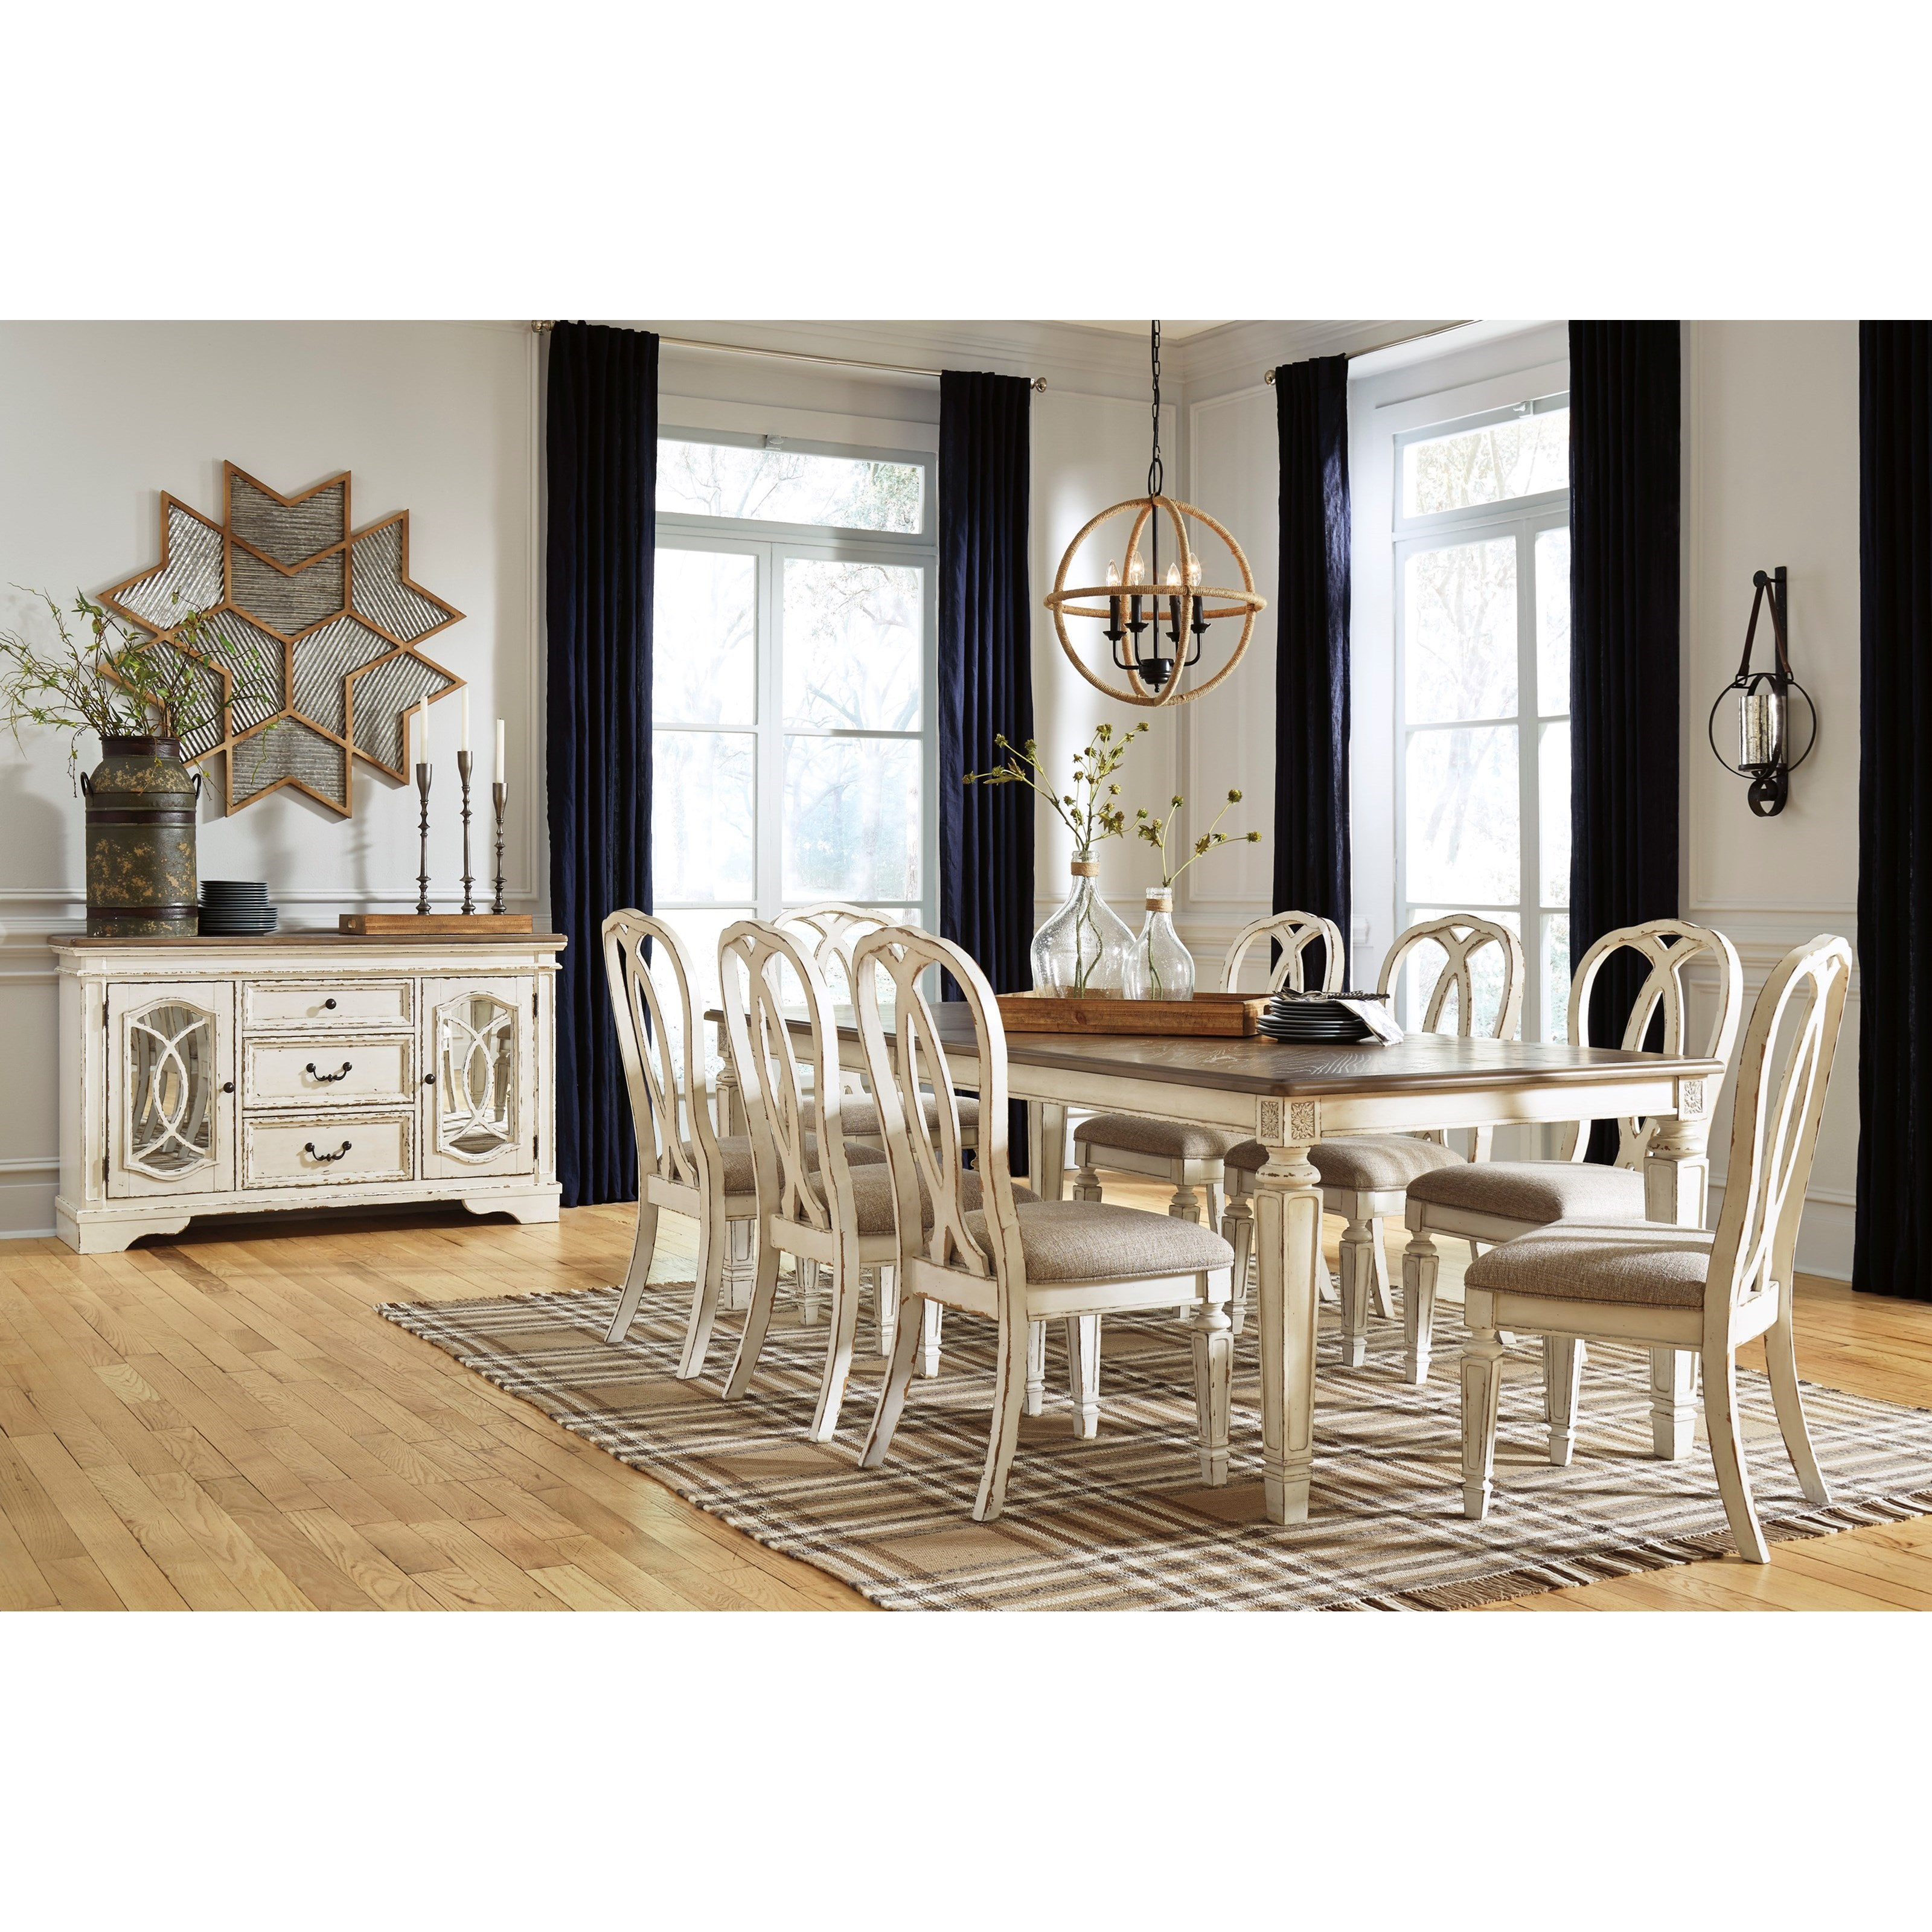 Realyn Formal Dining Room Group by Signature Design by Ashley at Northeast Factory Direct